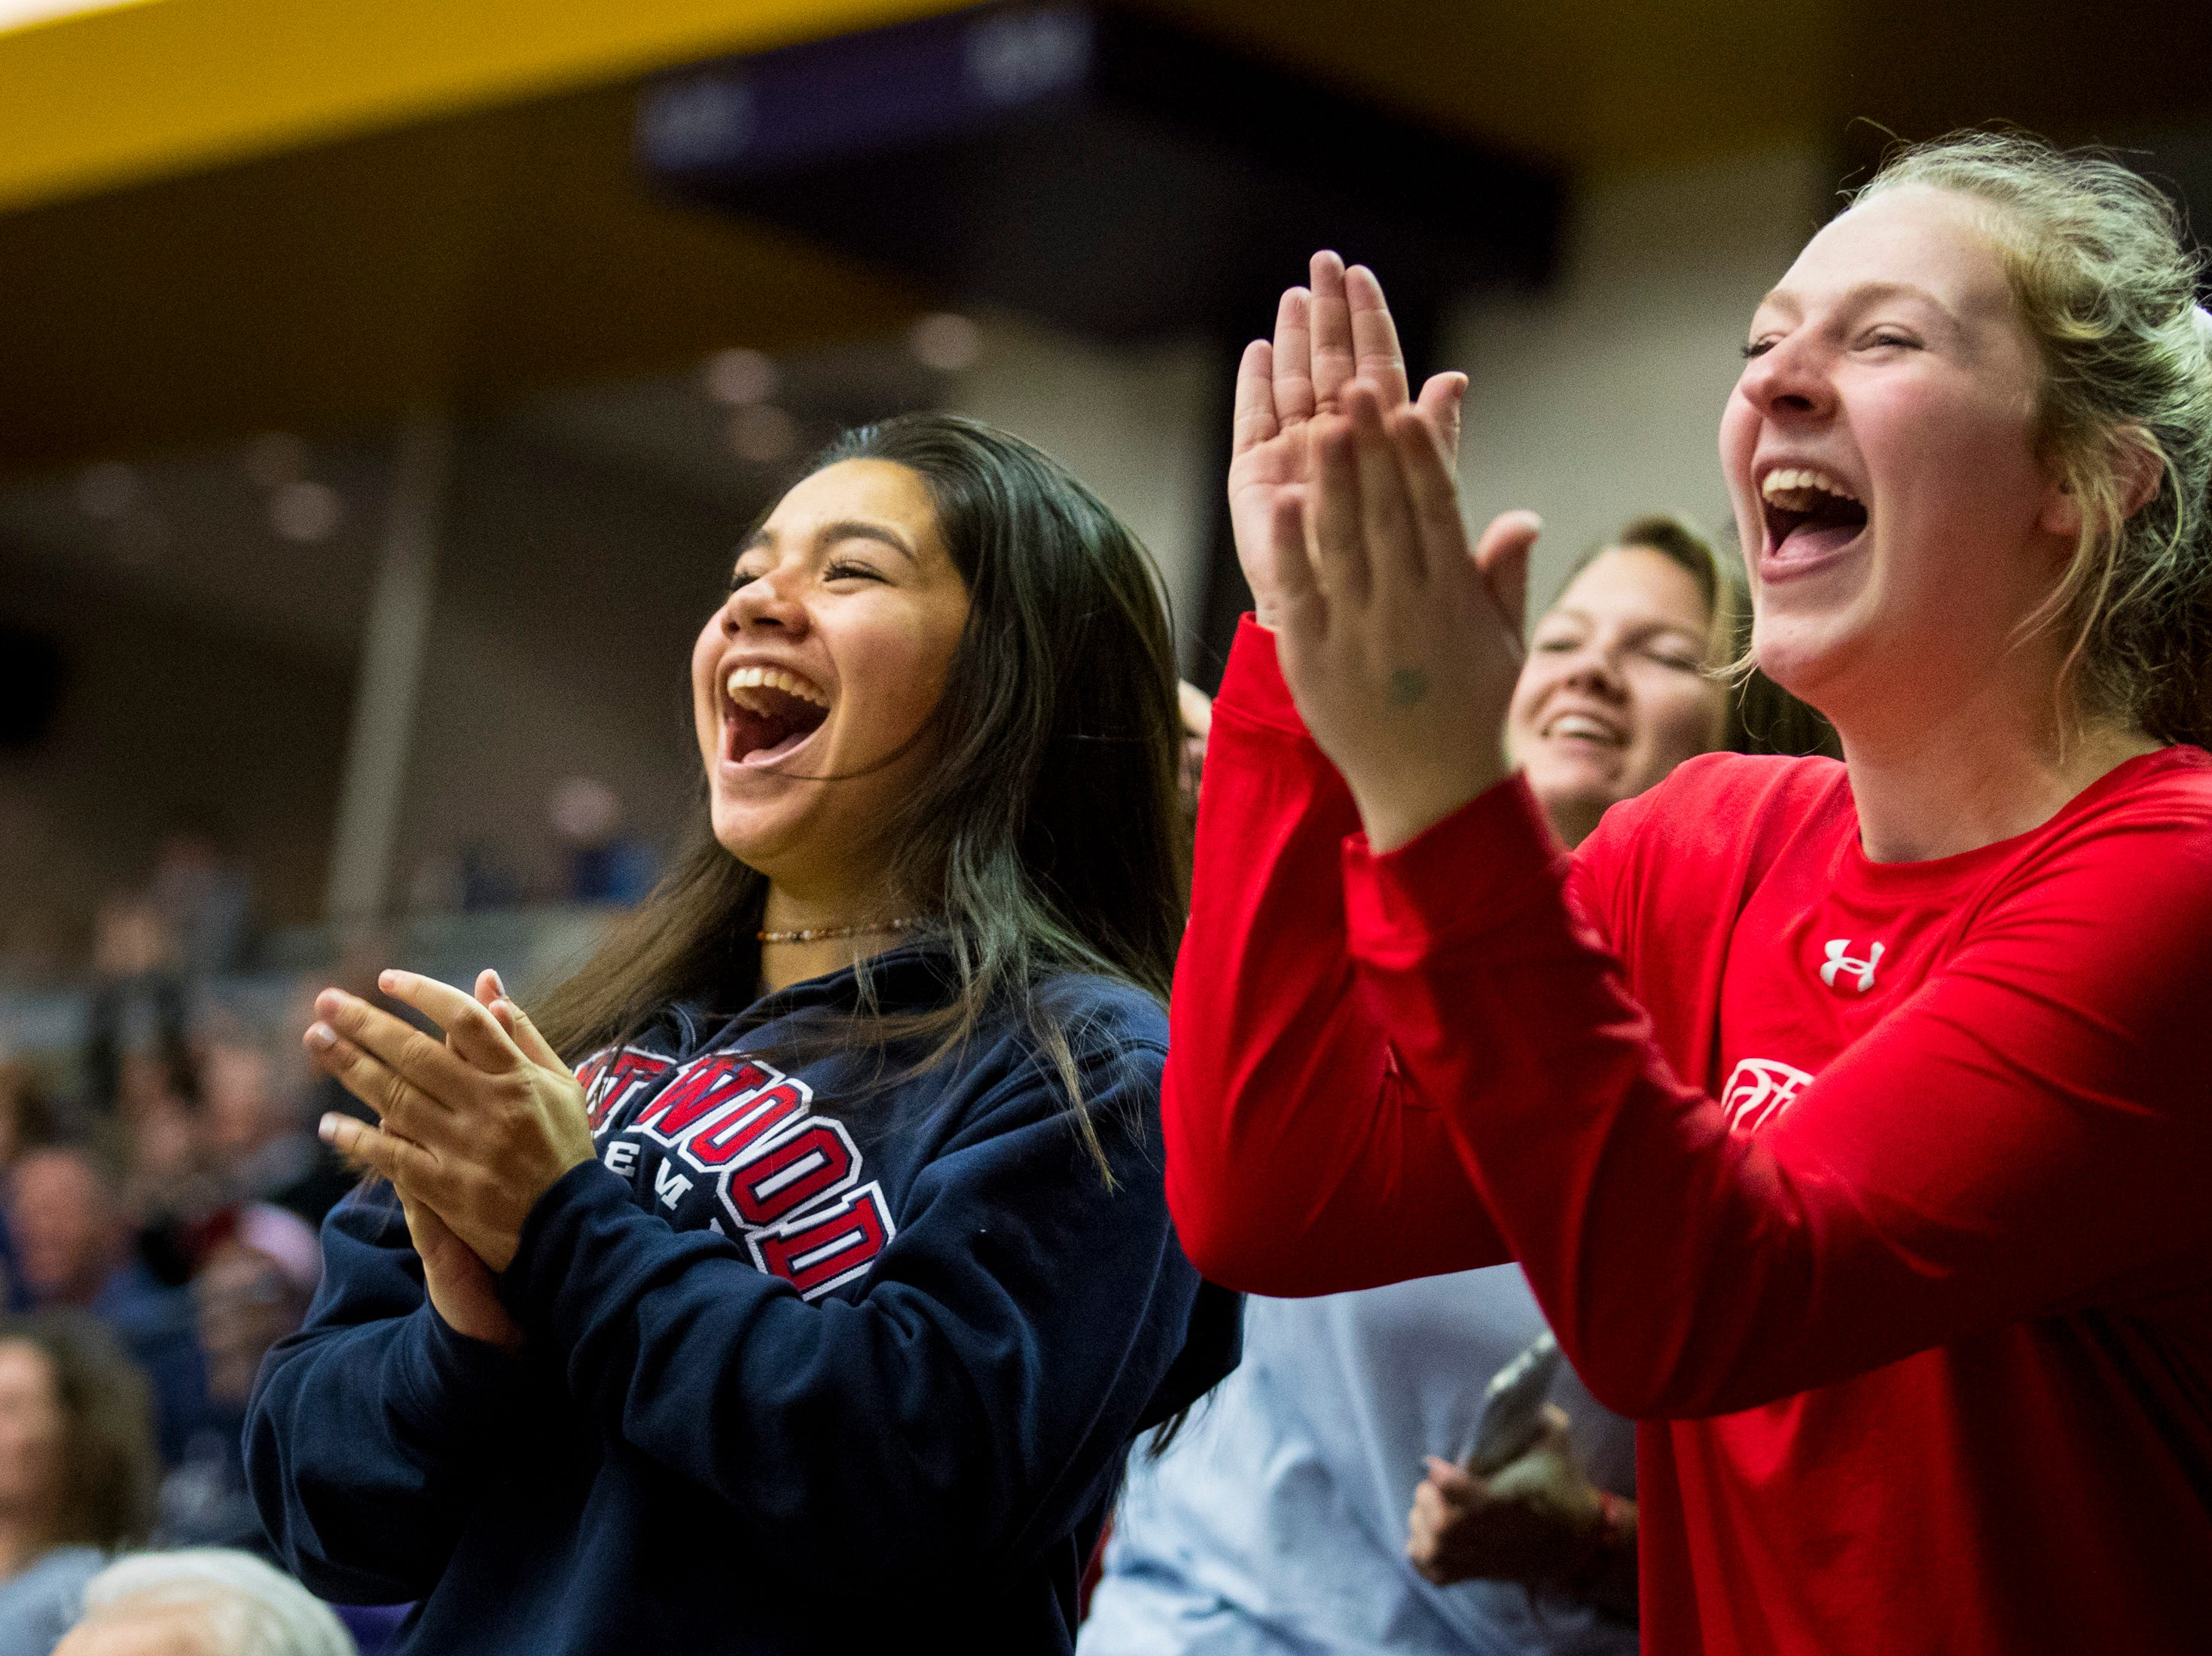 Brentwood Academy students Teya Tagatauli, left, and Annabelle Dreher cheer during Brentwood Academy's game against Father Ryan in the semifinal round of the TSSAA Division II Class AA State Championships at Lipscomb University's Allen Arena in Nashville on Thursday, Feb. 28, 2019.